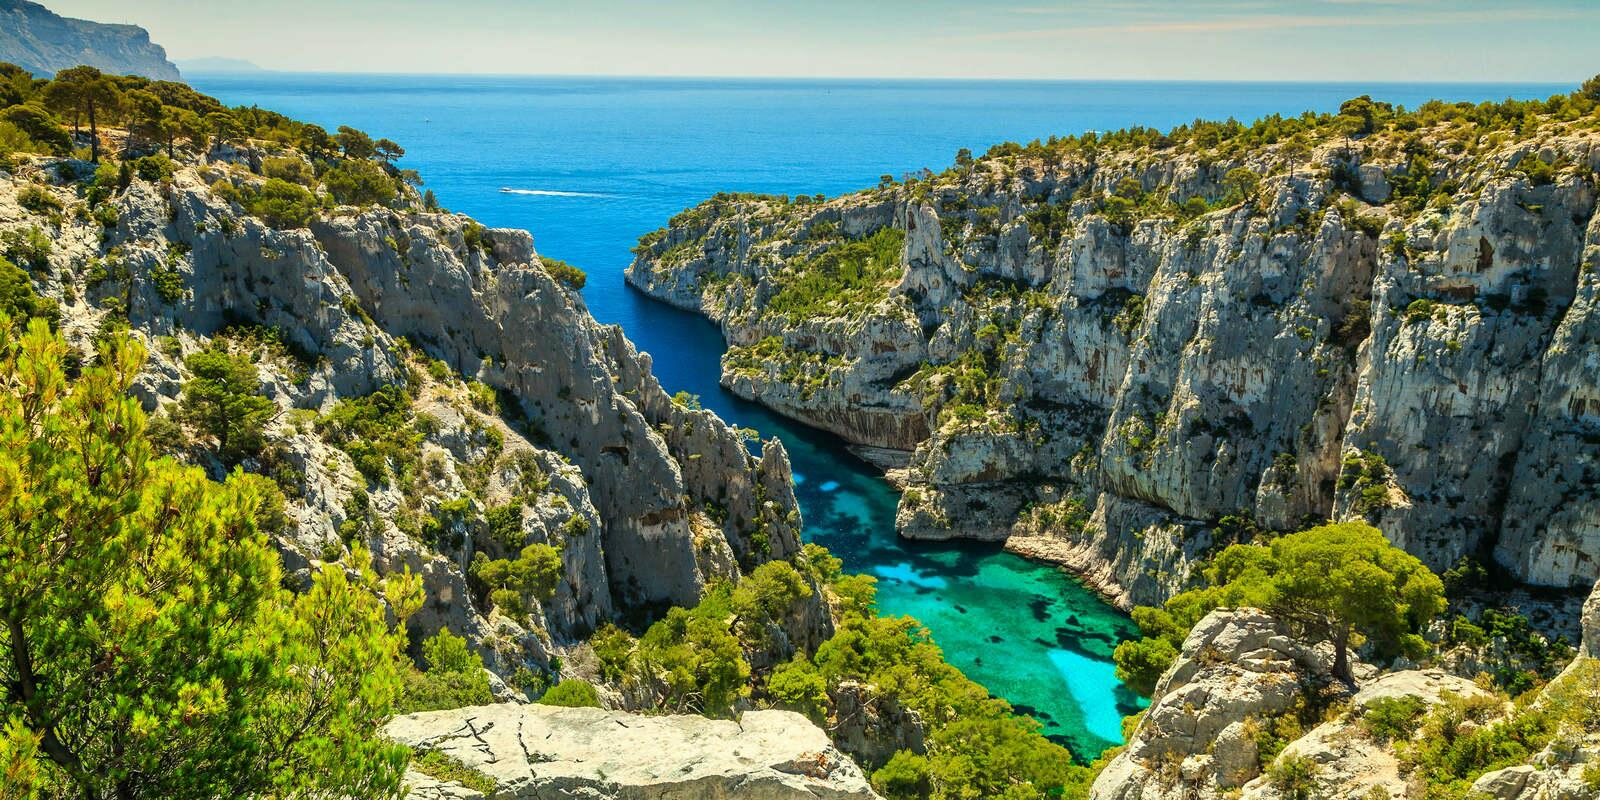 The most beautiful landscapes of the South of France in sailboat